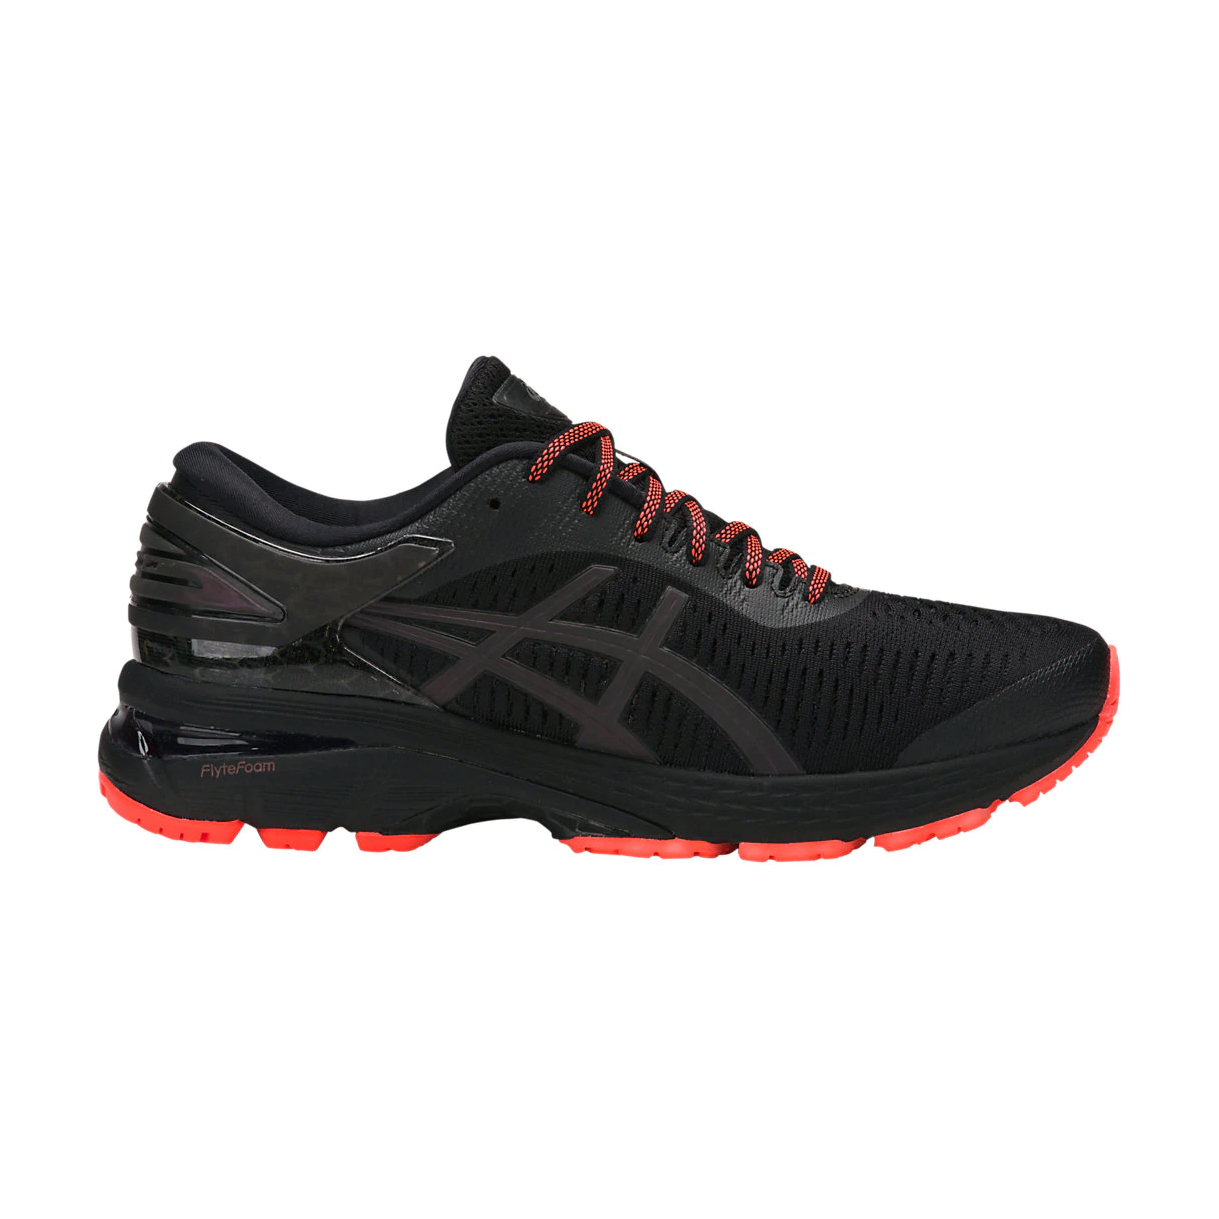 2bb696006e68 Asics Women s Gel-Kayano 25 Lite Show Running Shoe- Black